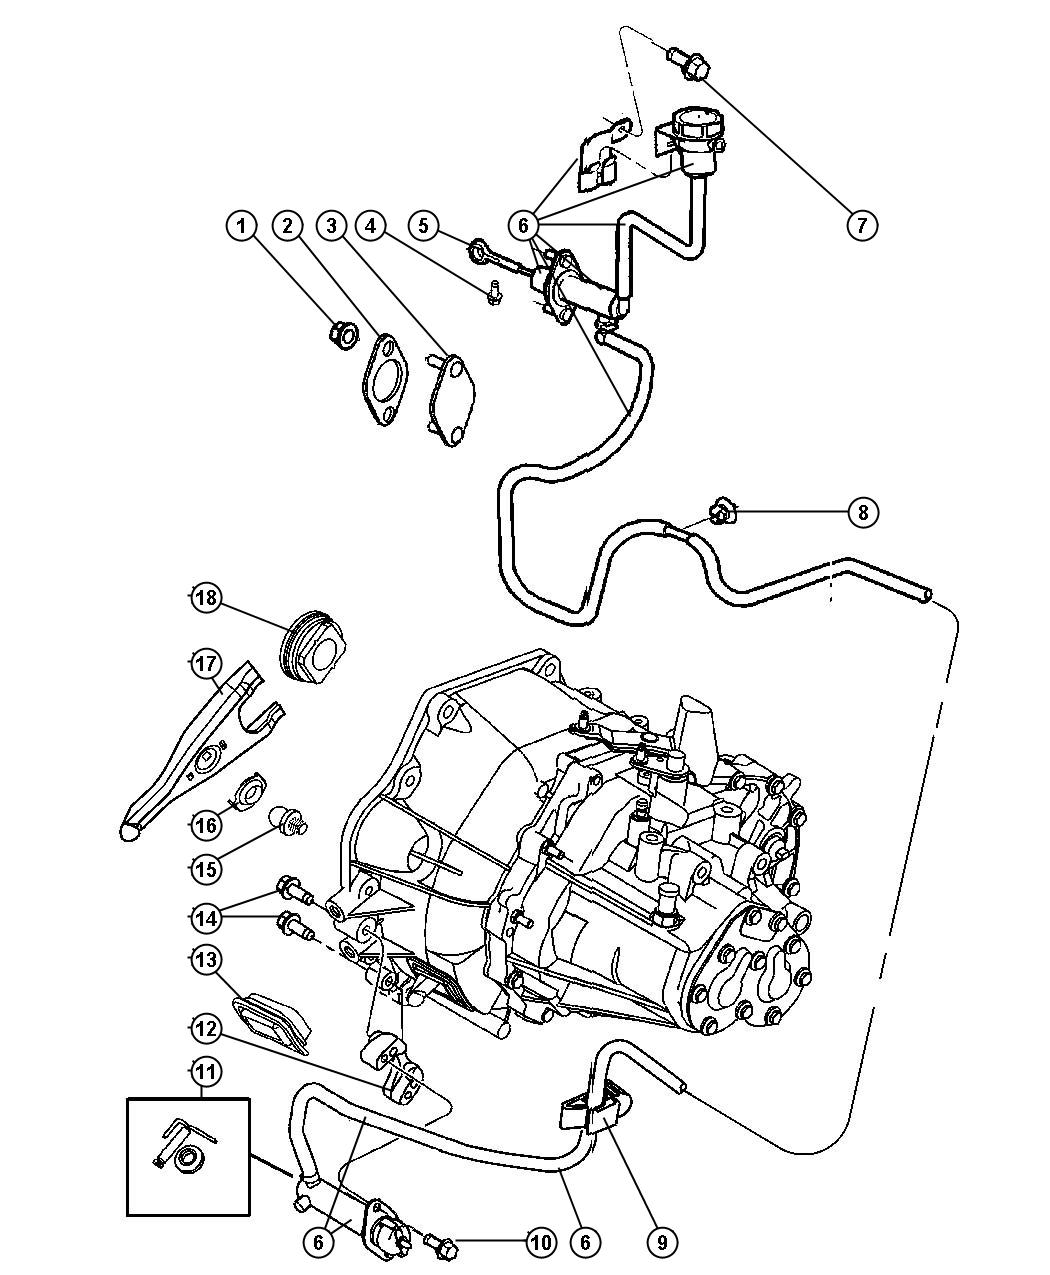 2006 pt cruiser rear suspension diagram